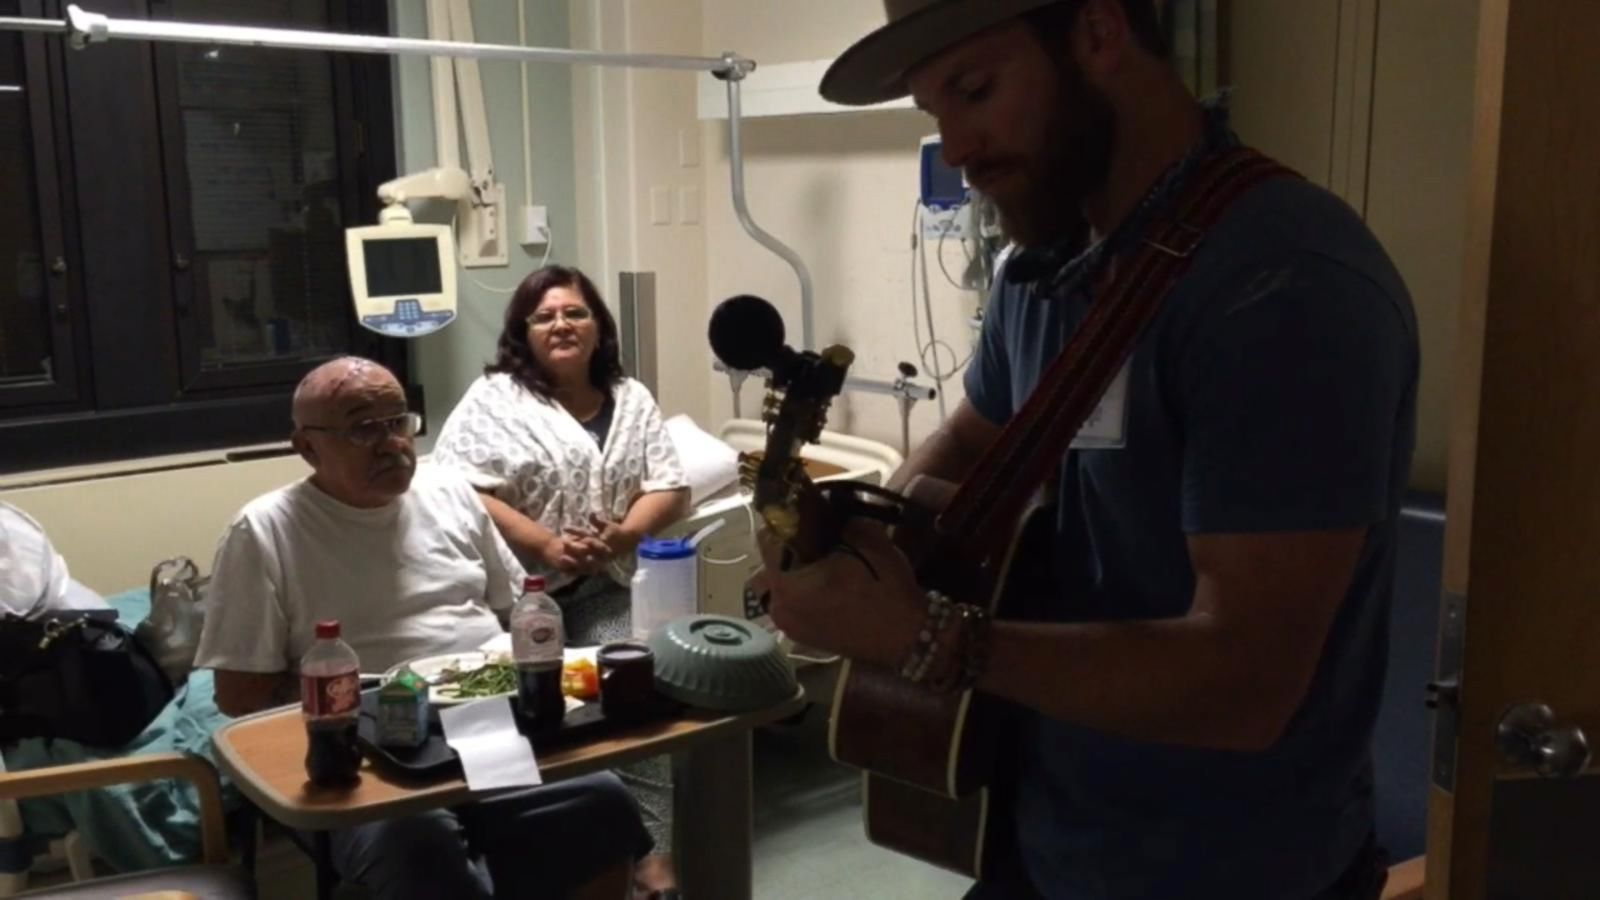 VIDEO: Drake White Visits Patients at the Denver VA Hospital